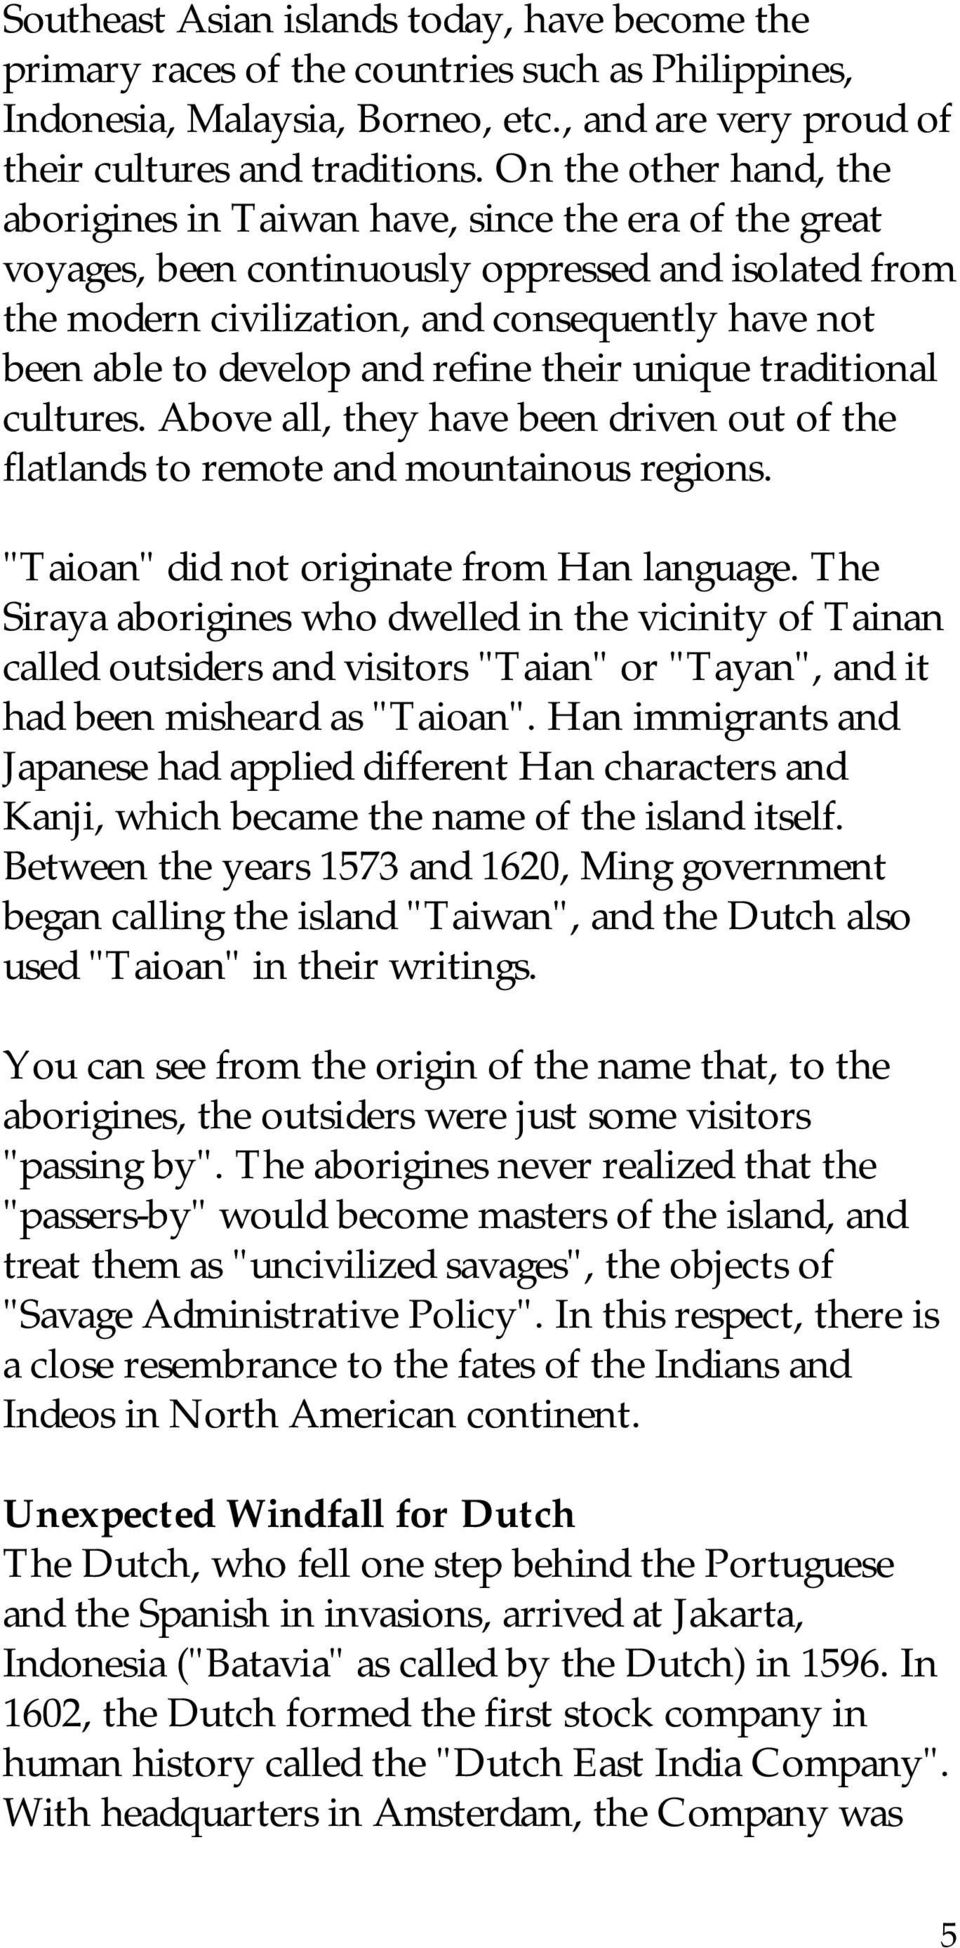 "develop and refine their unique traditional cultures. Above all, they have been driven out of the flatlands to remote and mountainous regions. ""Taioan"" did not originate from Han language."